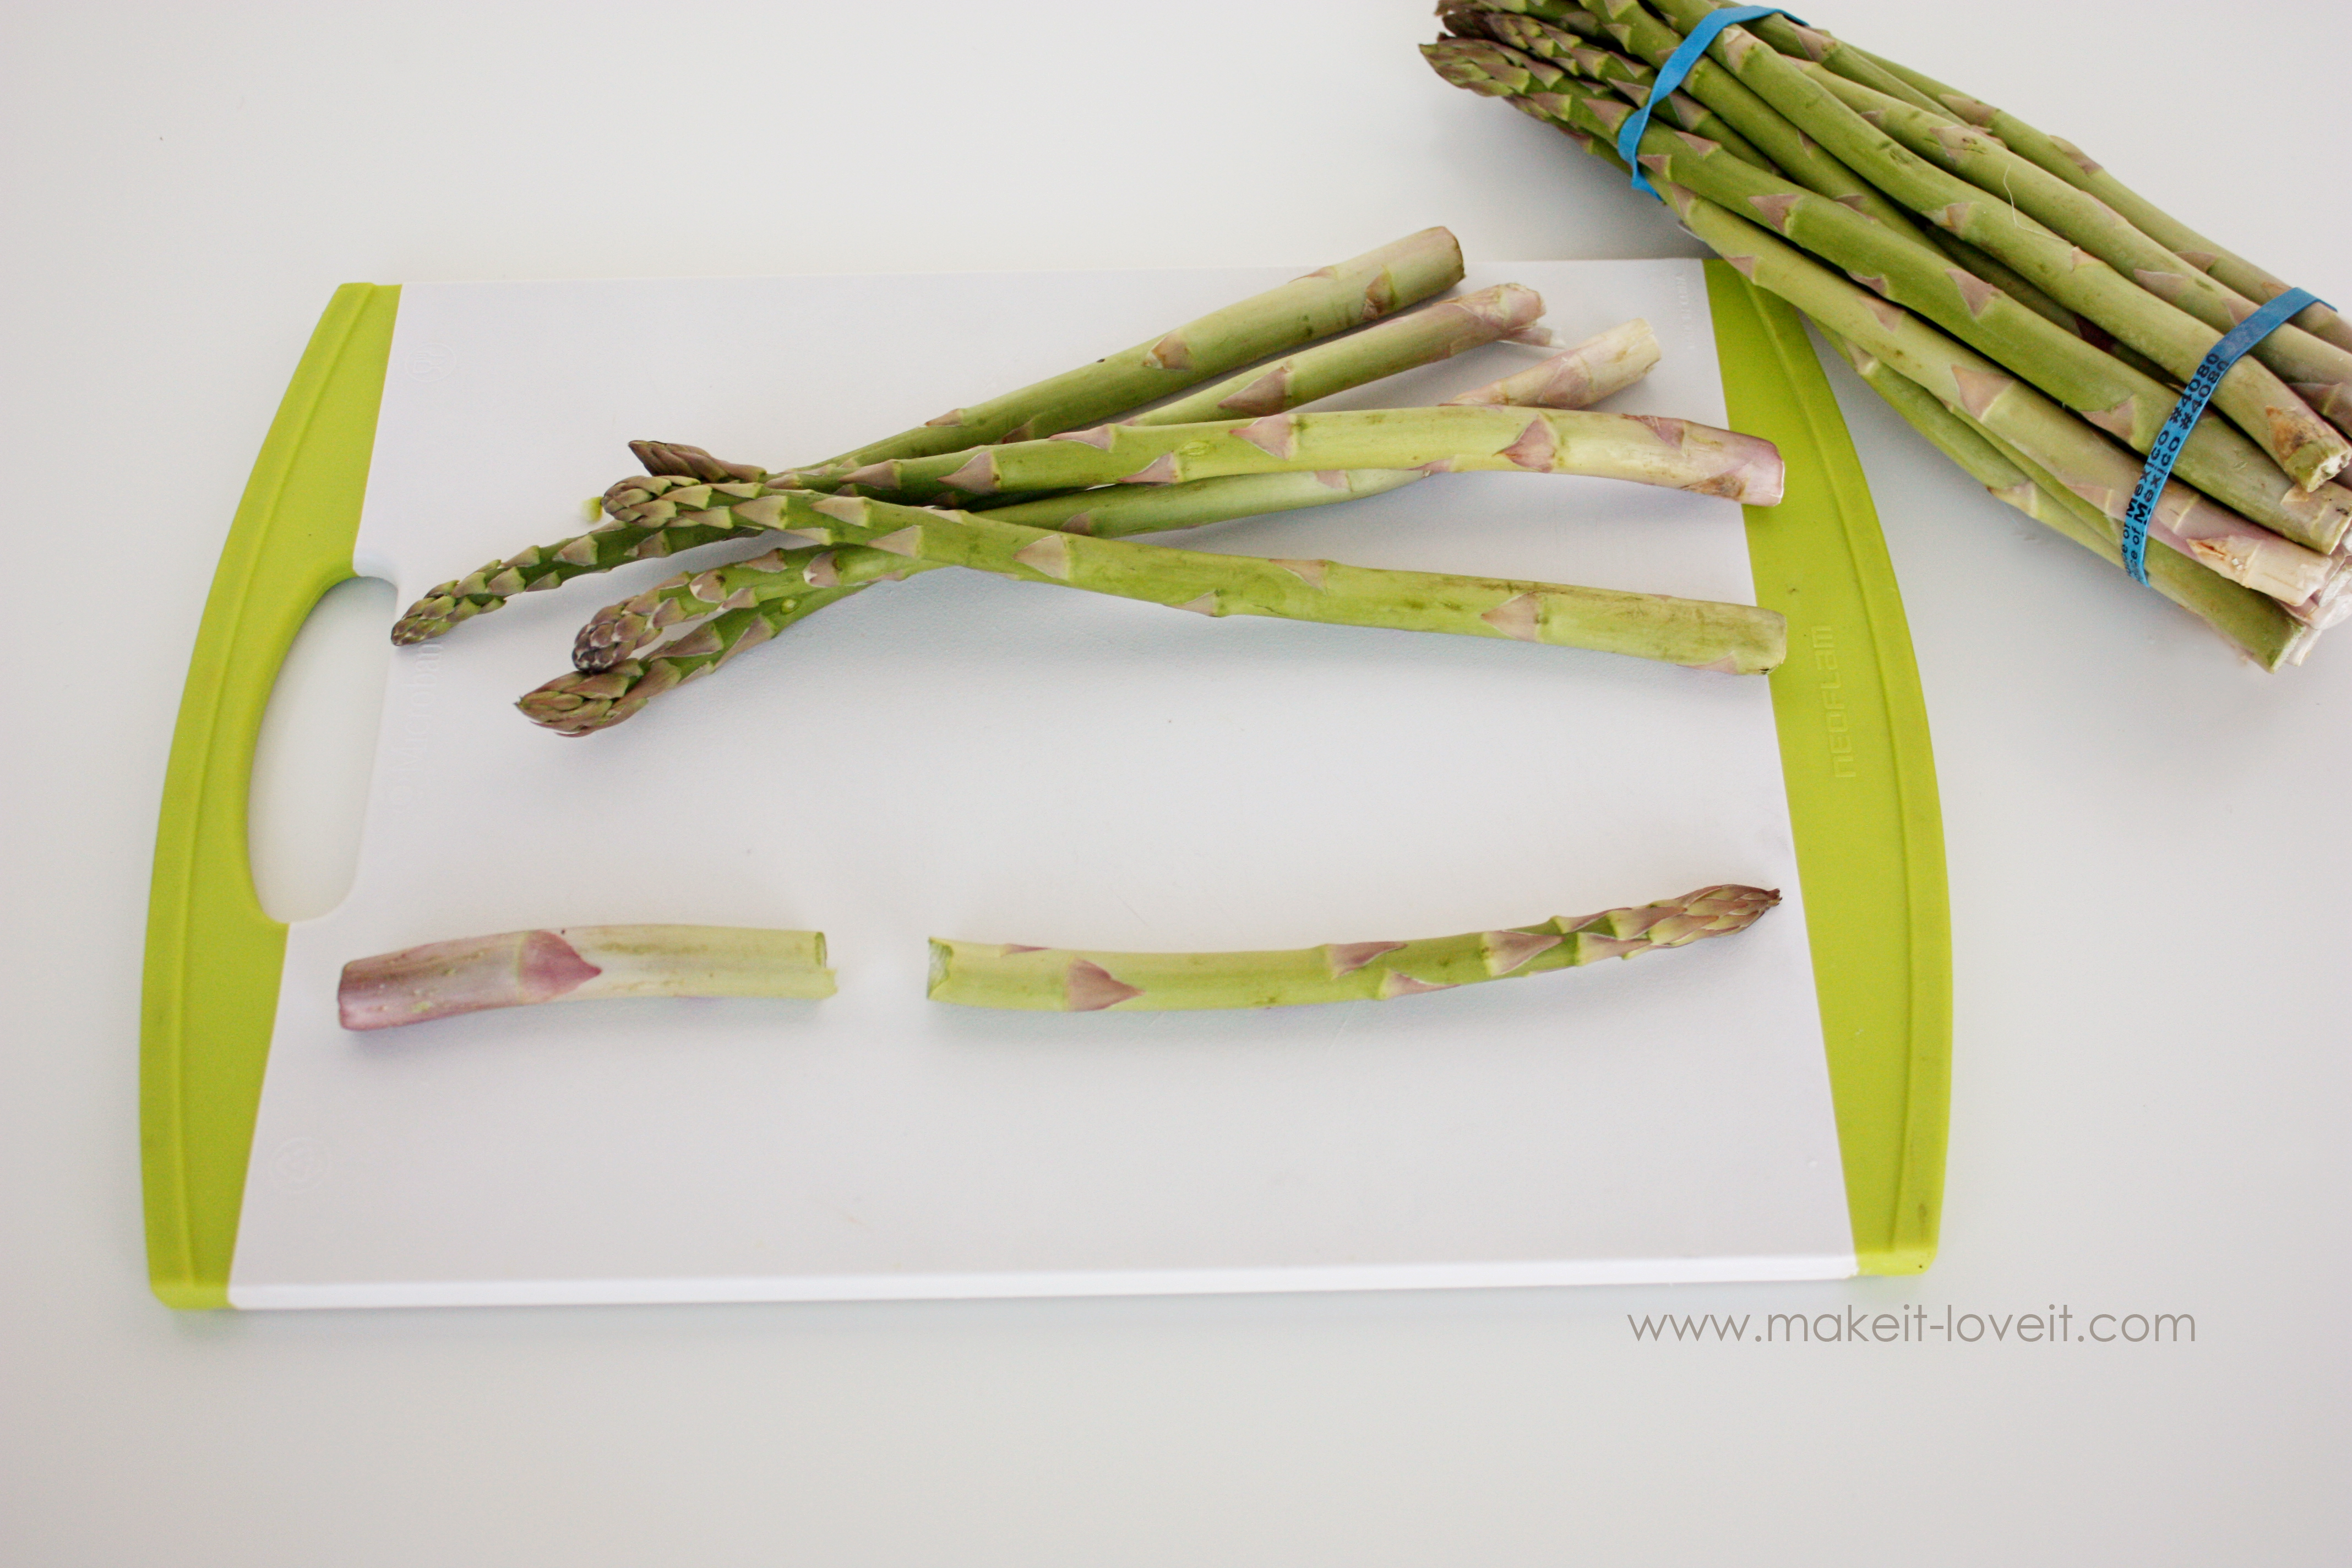 How to Properly Cut and Prepare Asparagus (6)